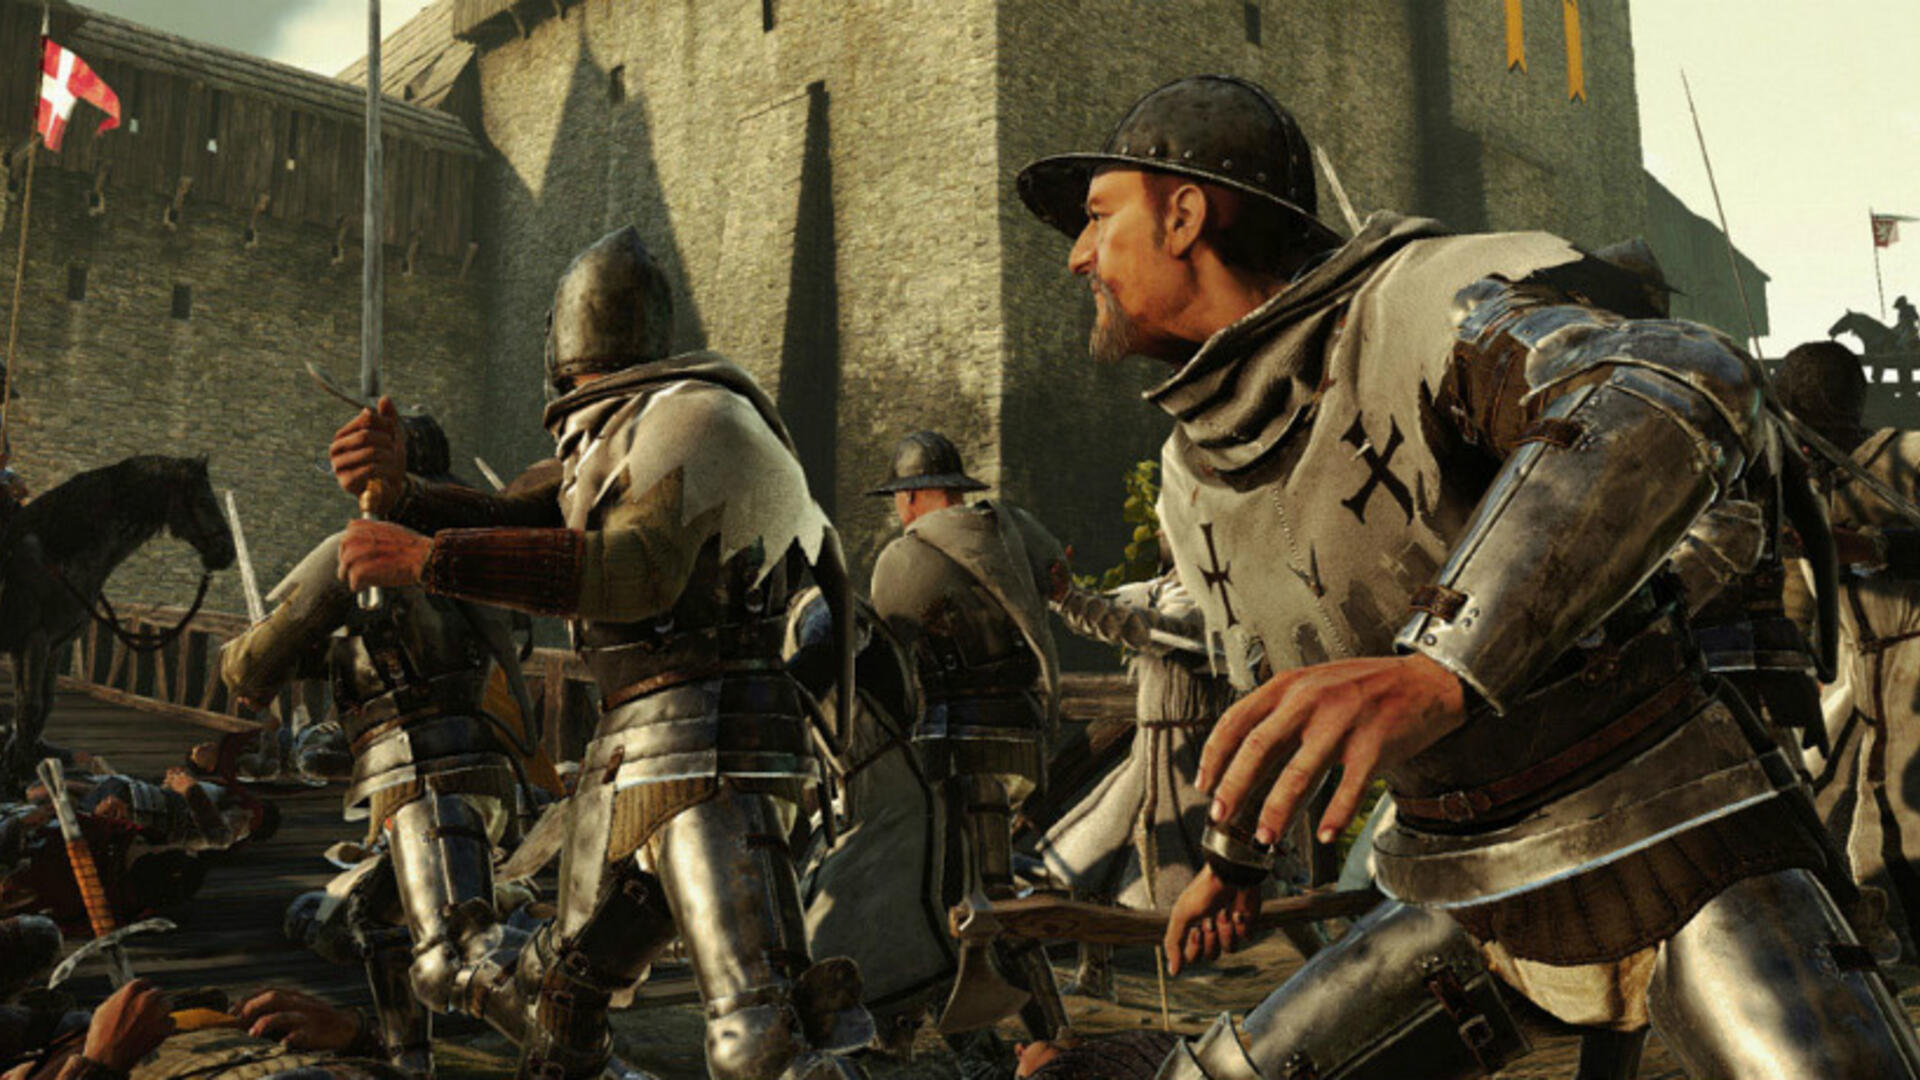 THQ Nordic Acquires Studio Behind Kingdom Come: Deliverance